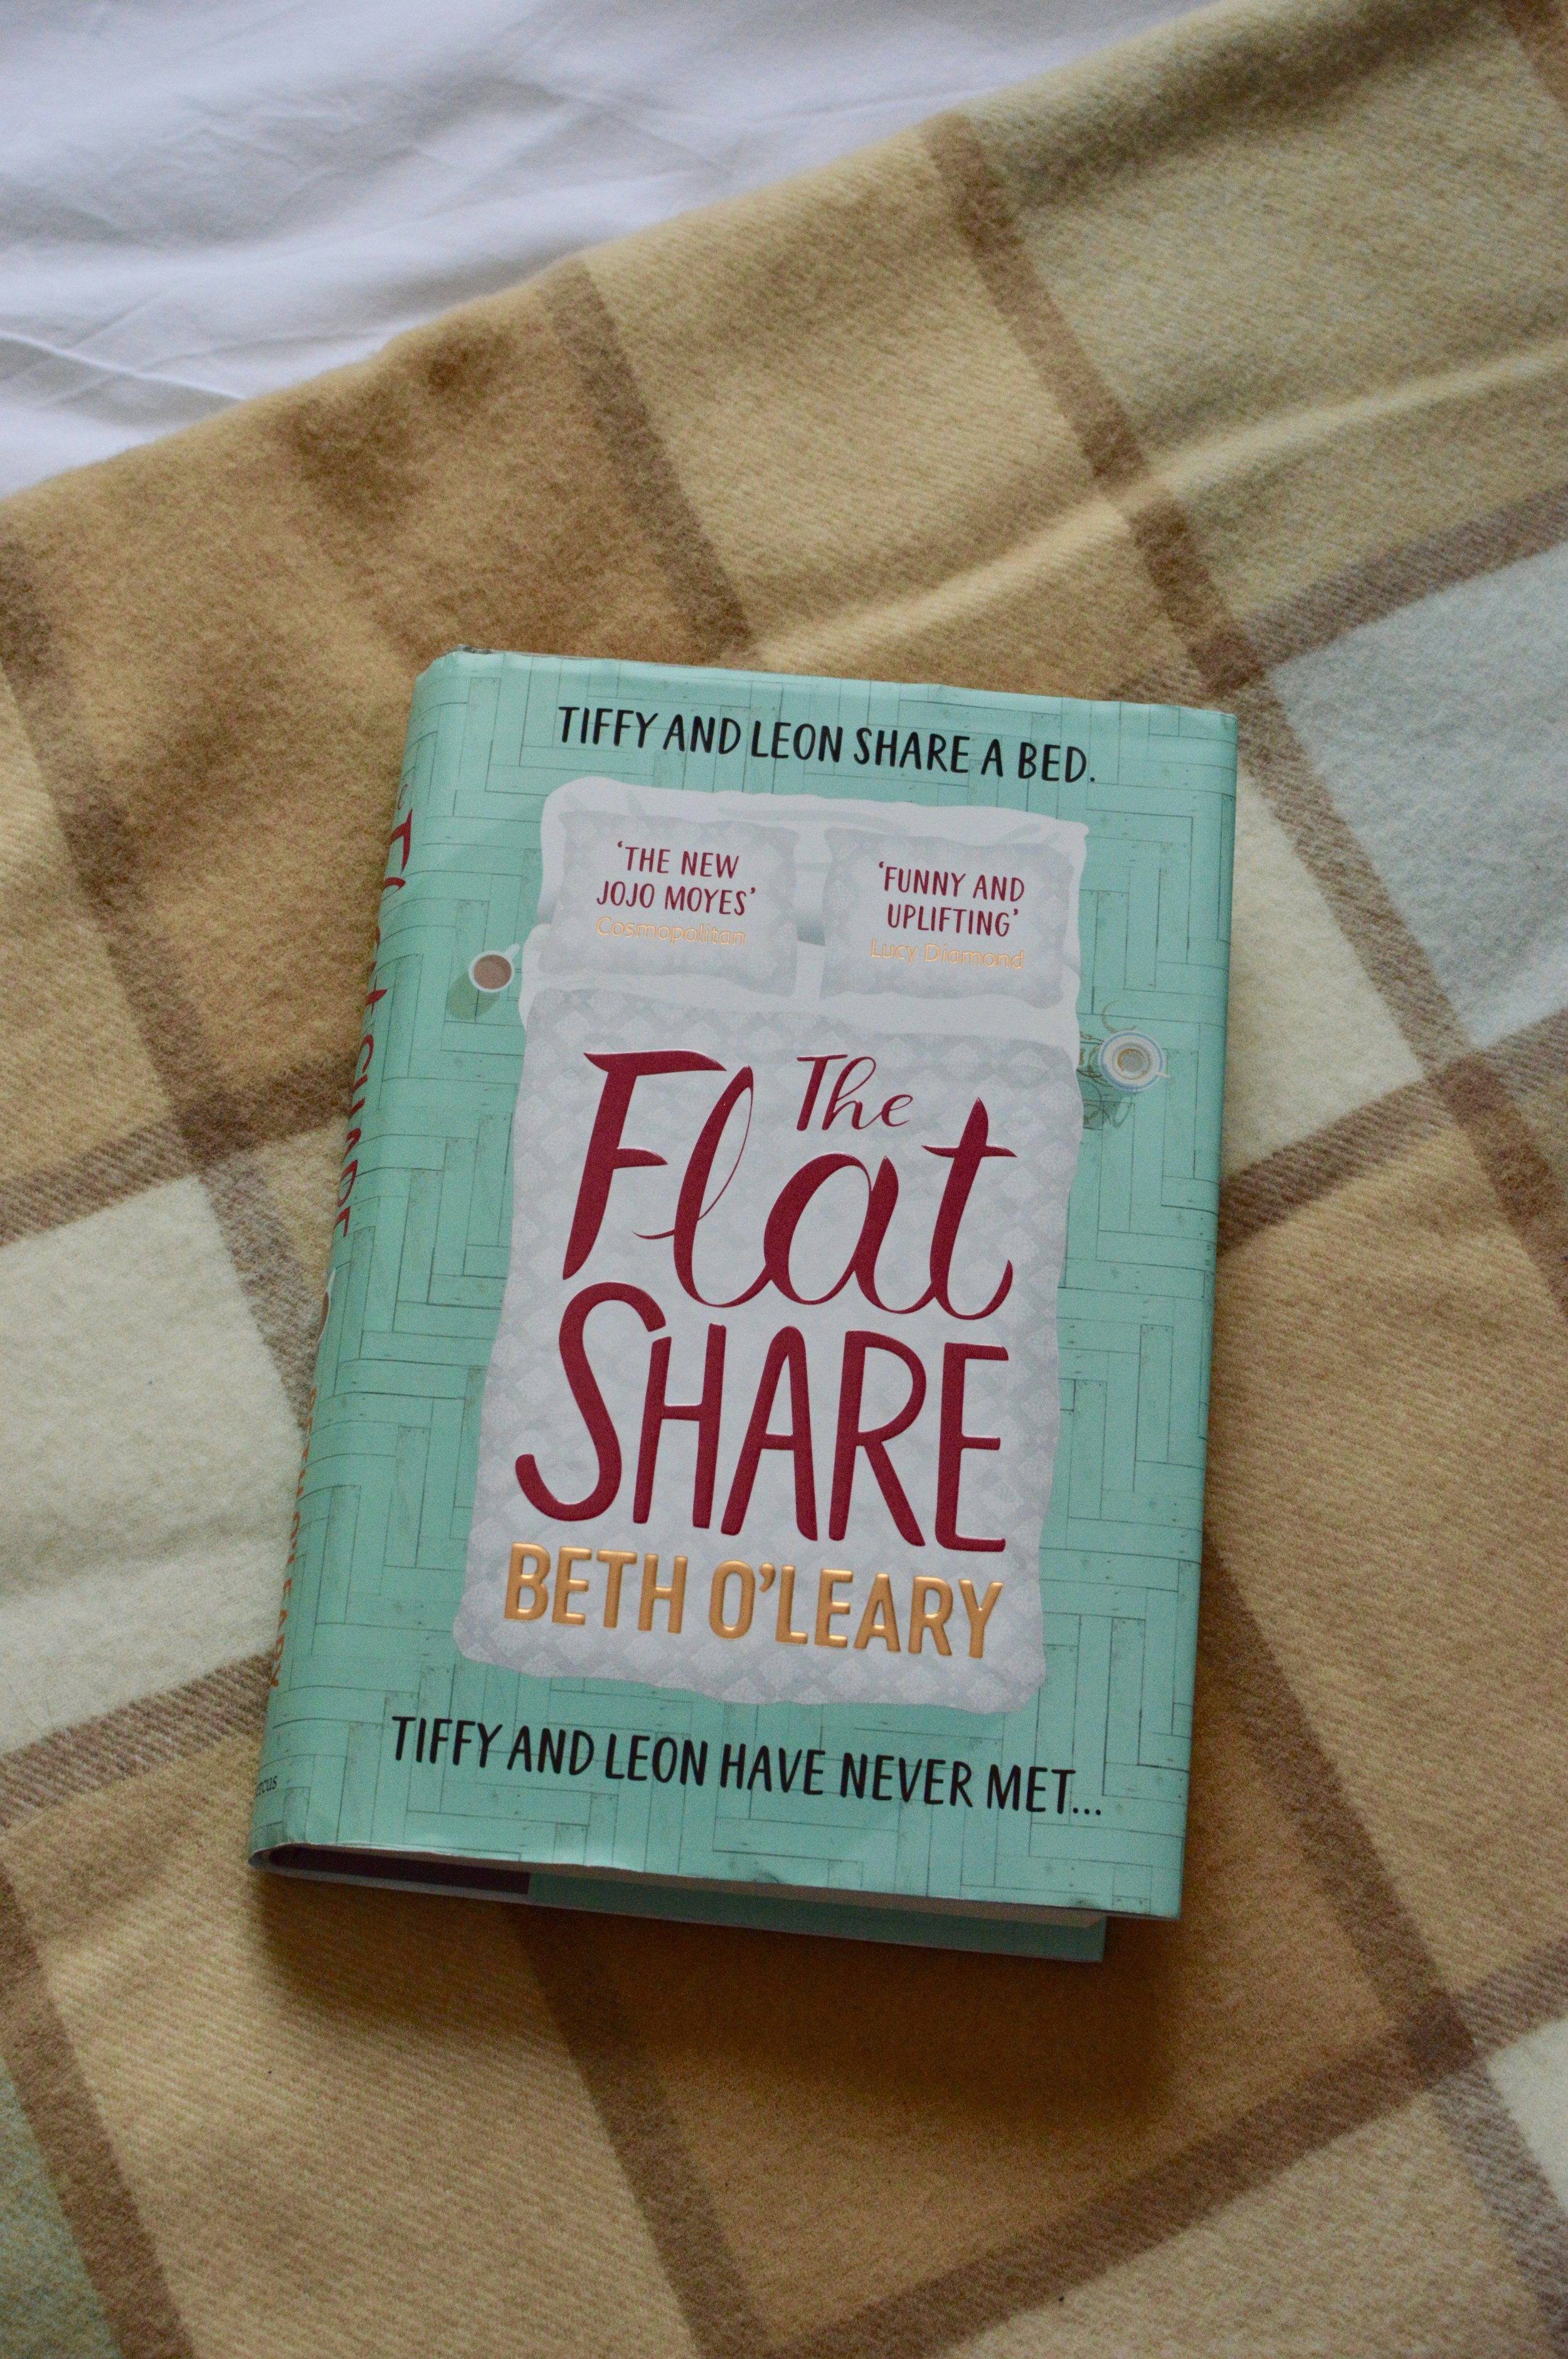 The Flatshare by Beth O'Leary - Blog Post Written by Jacqueline Ménoret